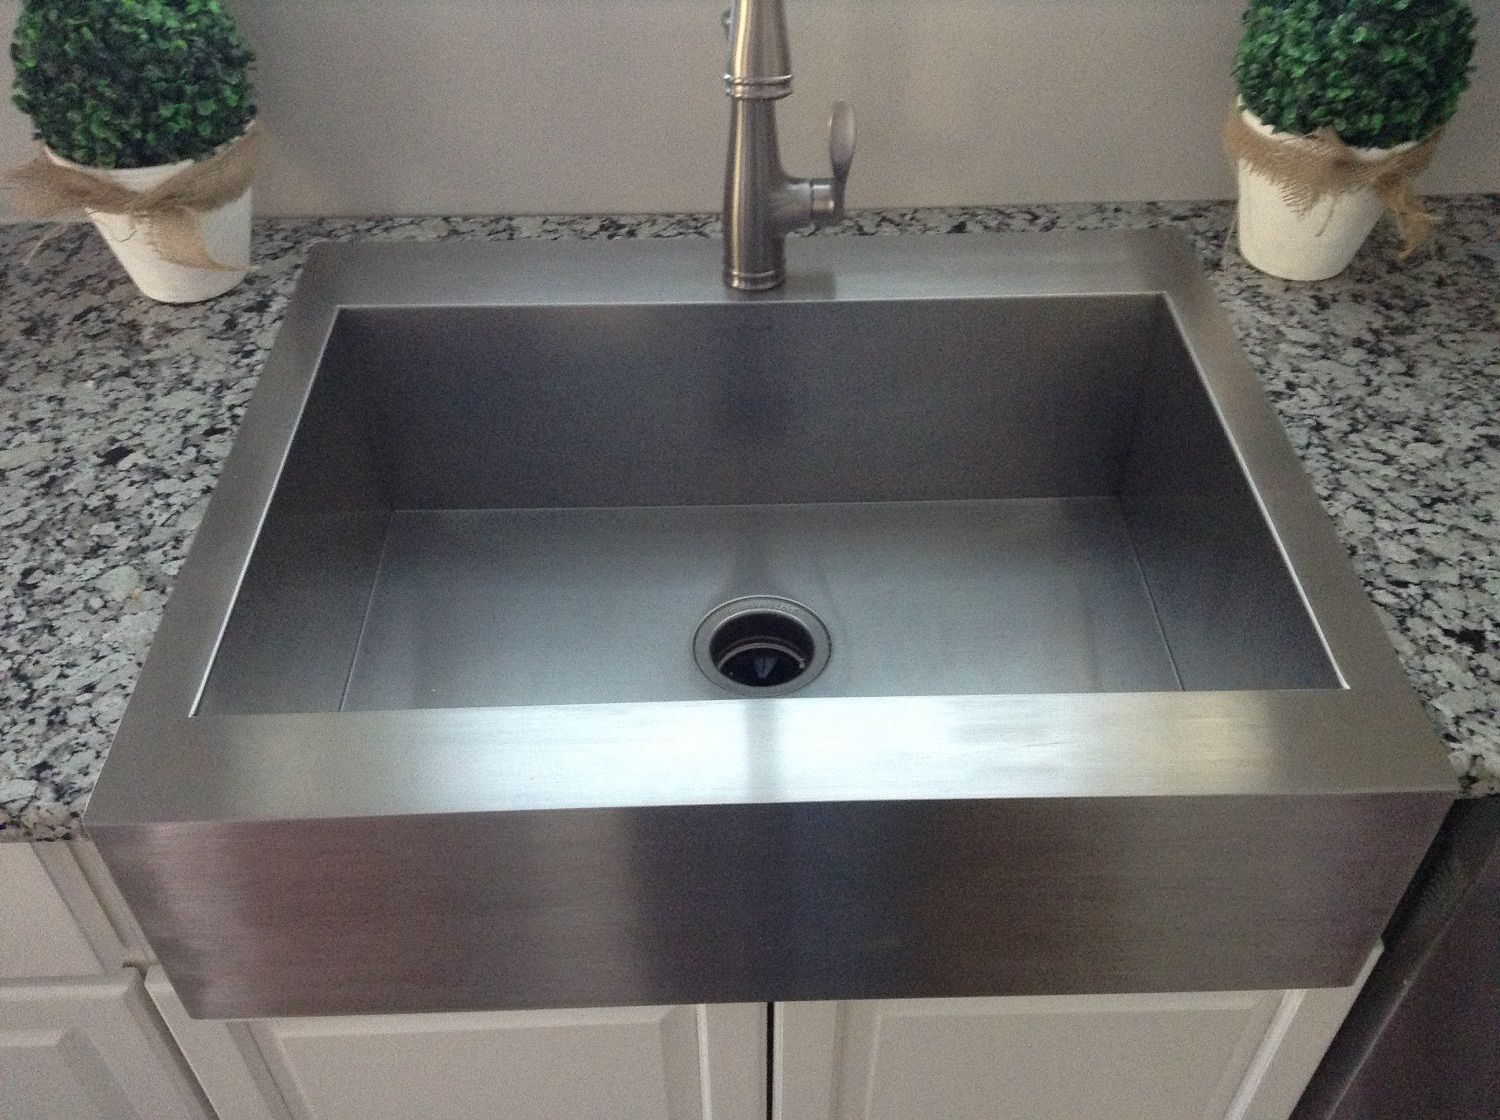 Small Stainless Steel Top Mount Farmhouse Kitchen Sink On Granite Stainless Steel Farmhouse Sink Top Mount Kitchen Sink Farmhouse Sink